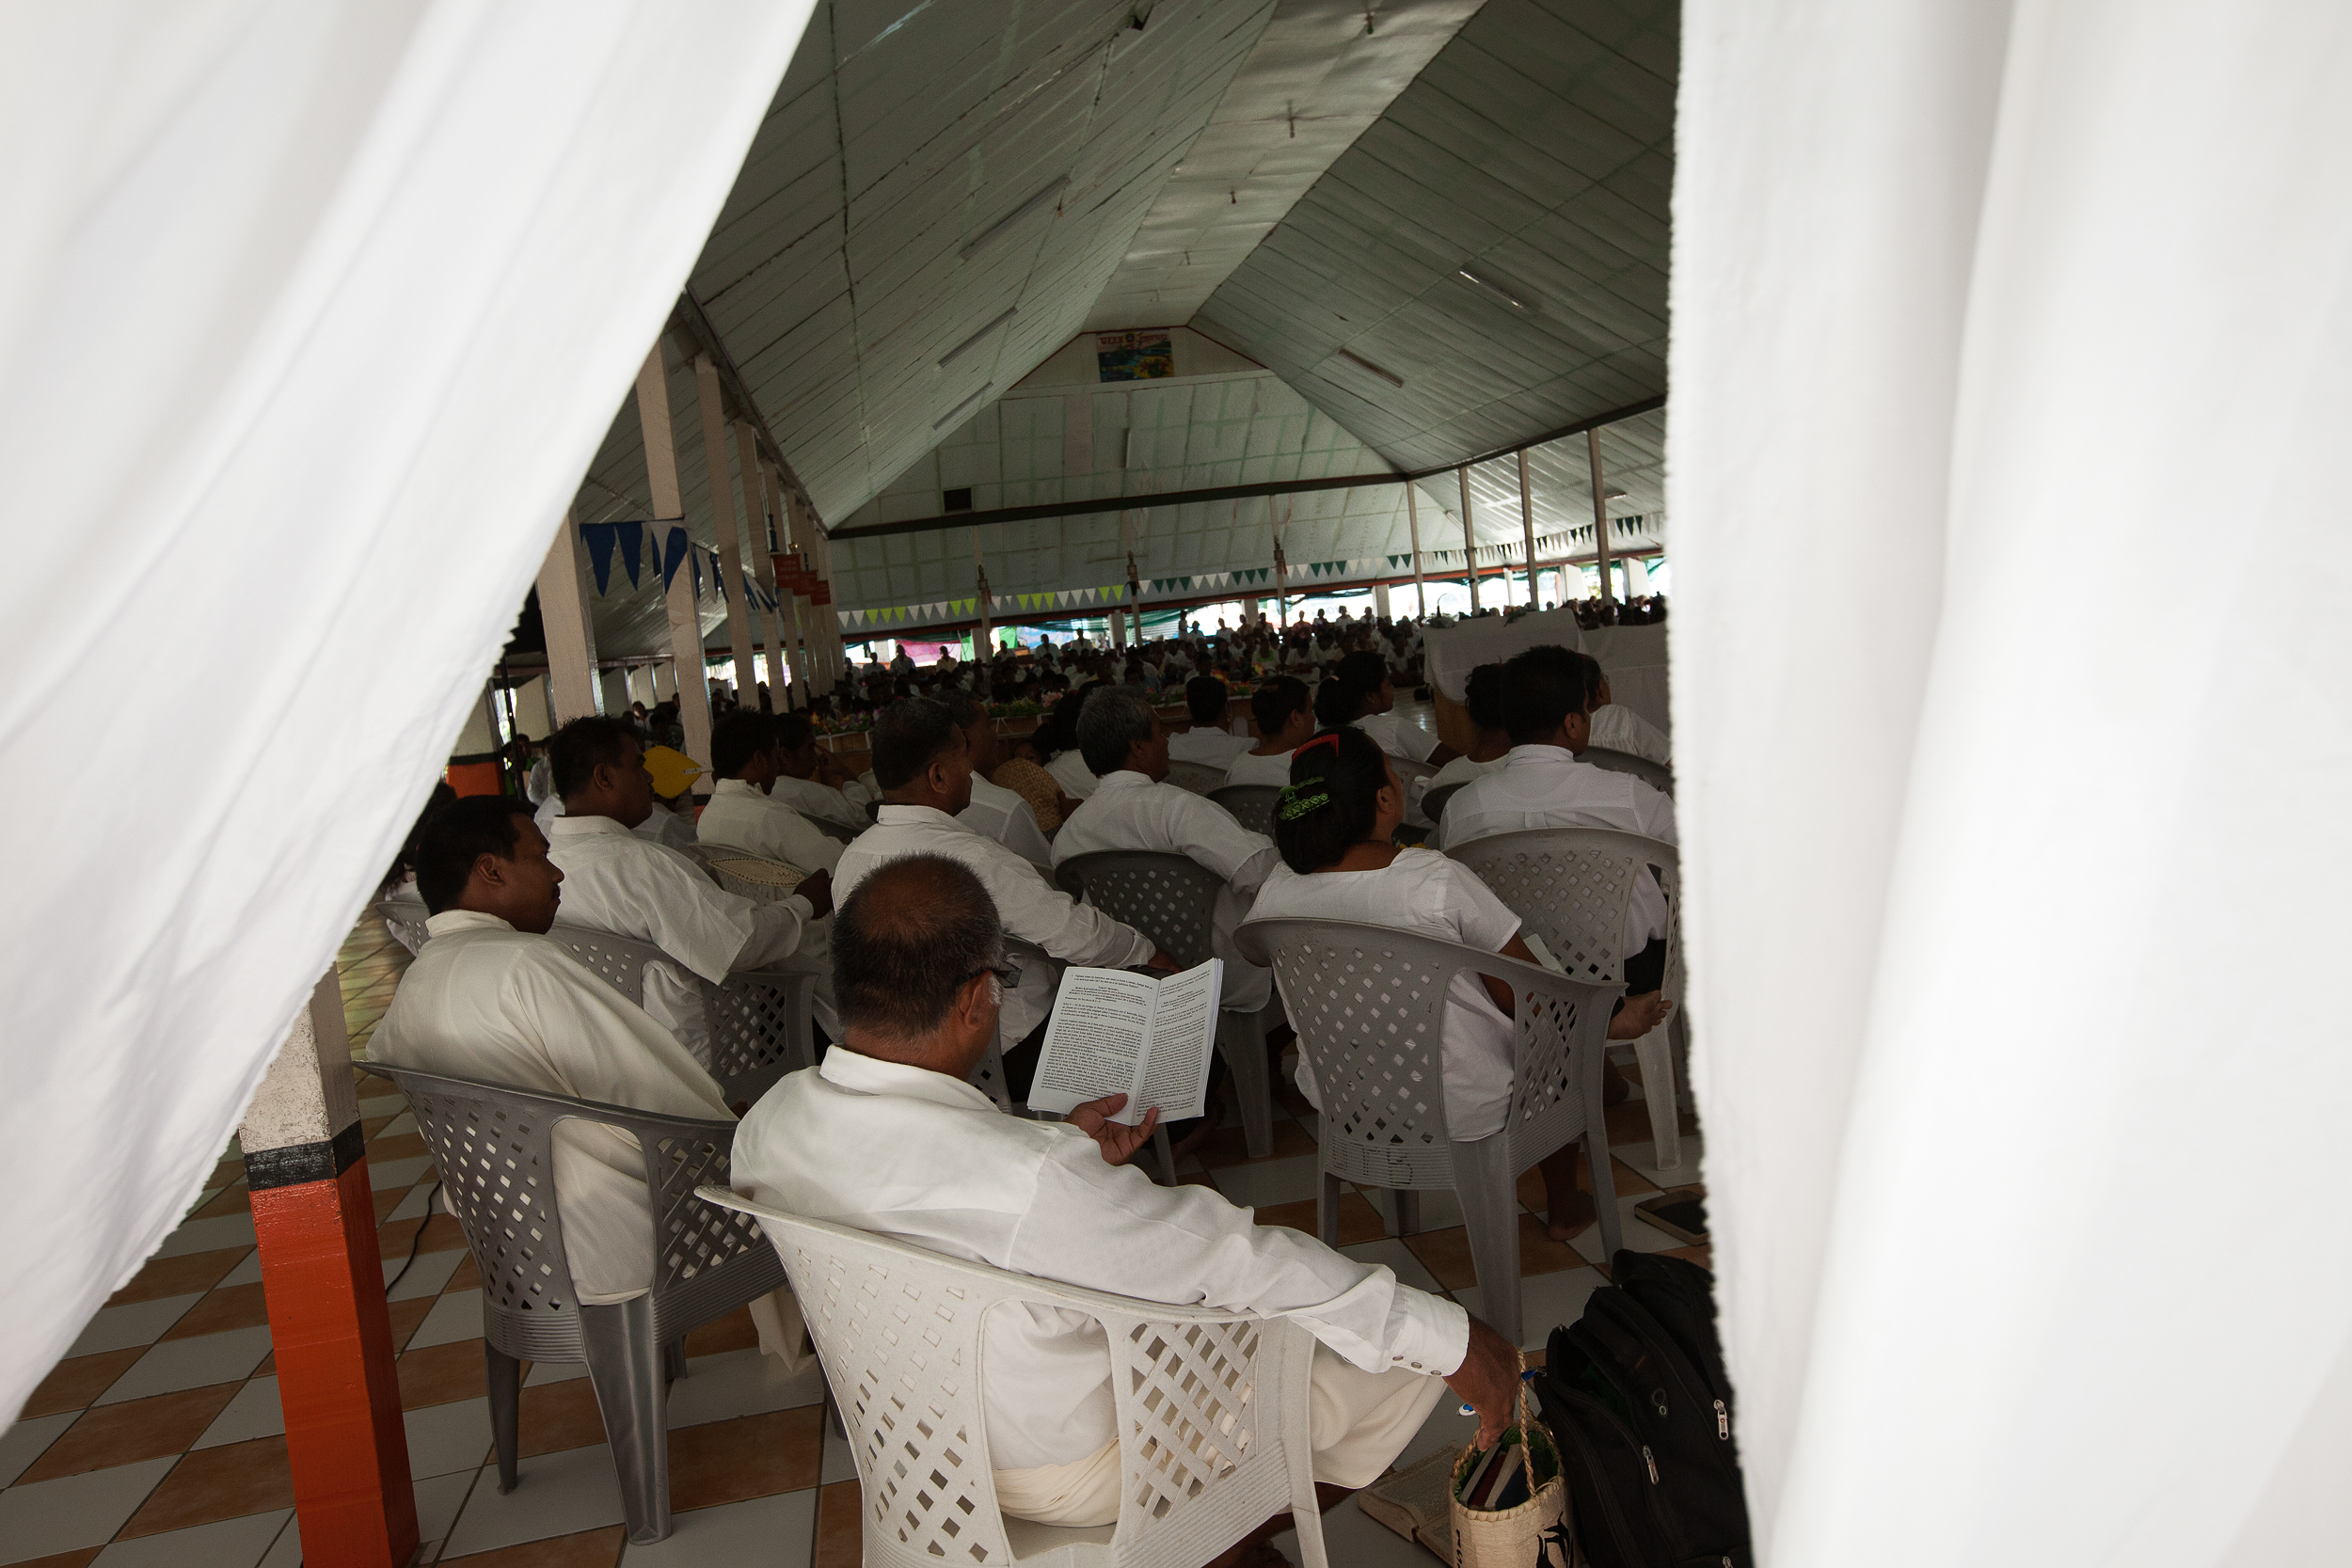 The choir of an Anglican church in Banraeaba, South Tarawa awaits their next hymn. Kiribati is overwhelmingly religious, and the varying religions can have very different attitudes towards the potential impacts of climate change. Some accept the science and work with the community in education about the issue and help with preventative measures, however others deny that God would let their islands disappear.